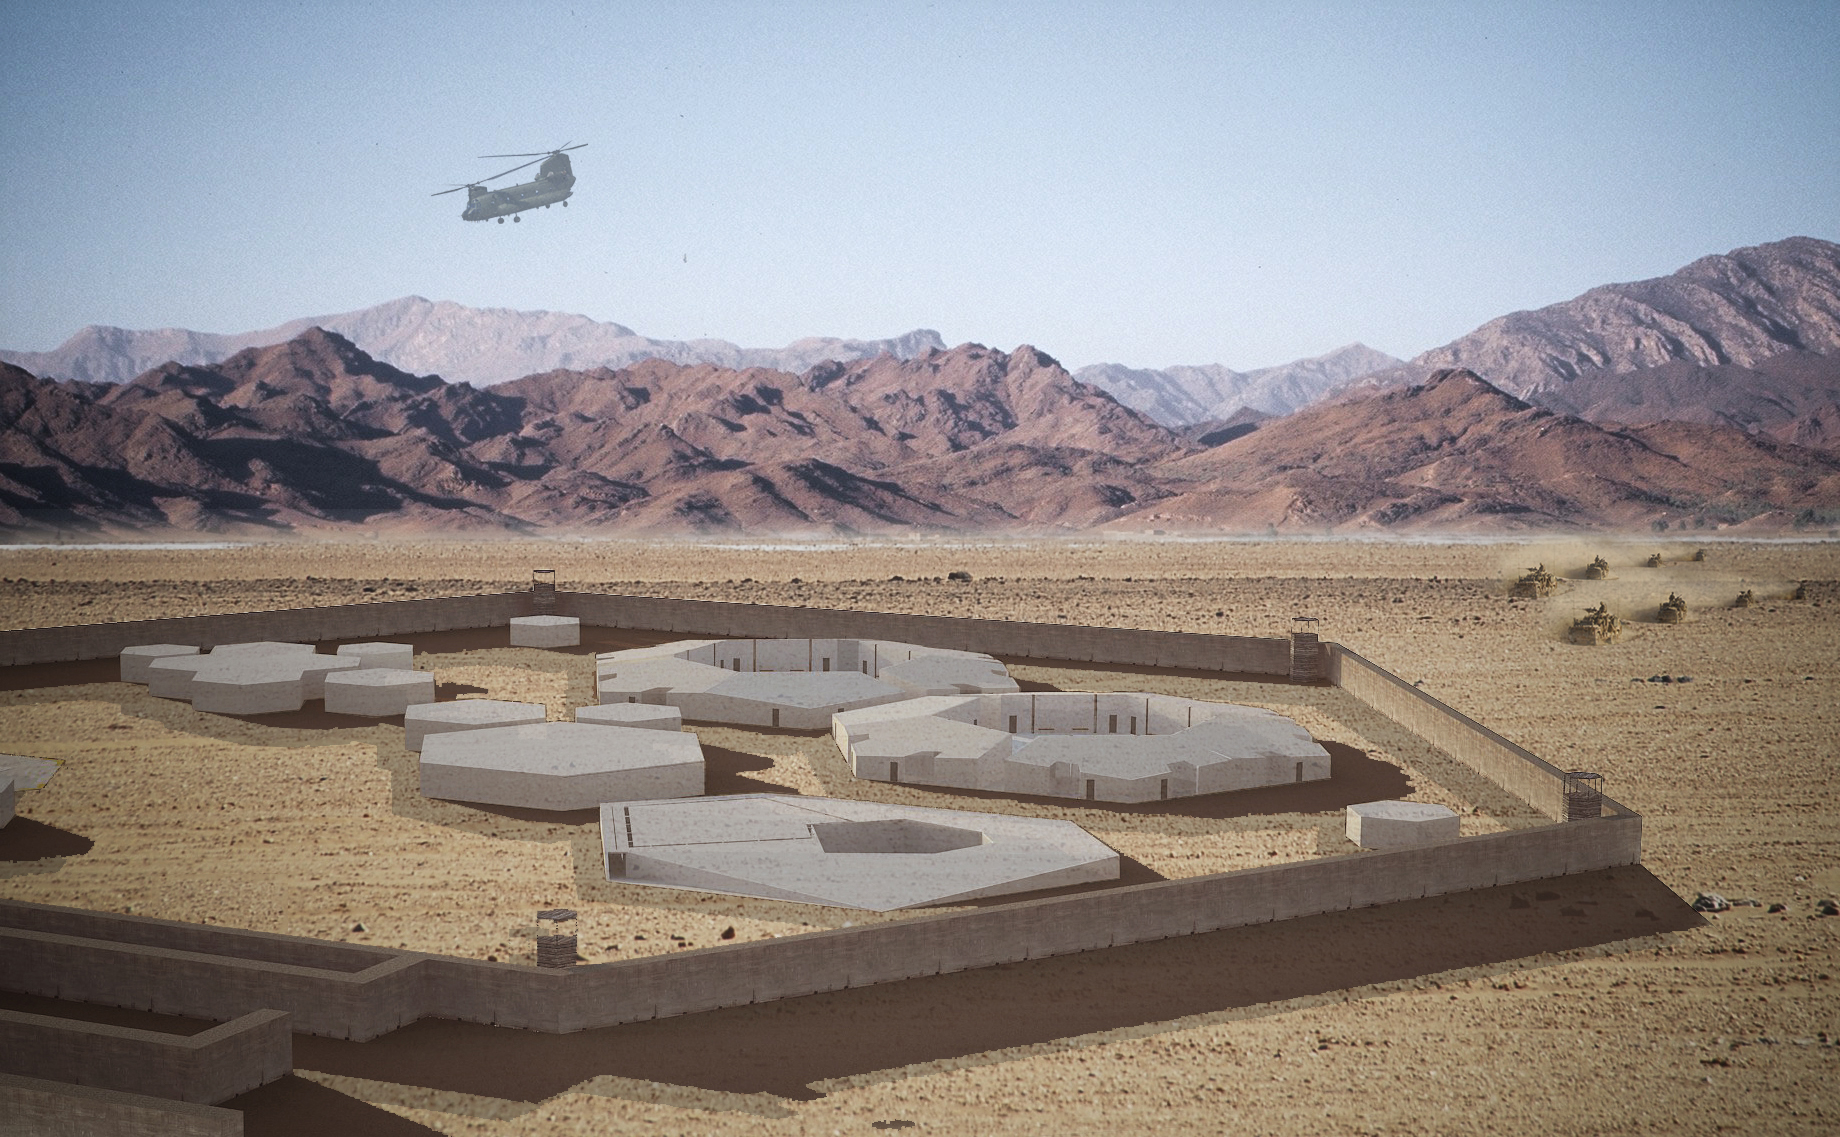 Zhenru Zhang - Design proposal for Delaram, Afghanistan